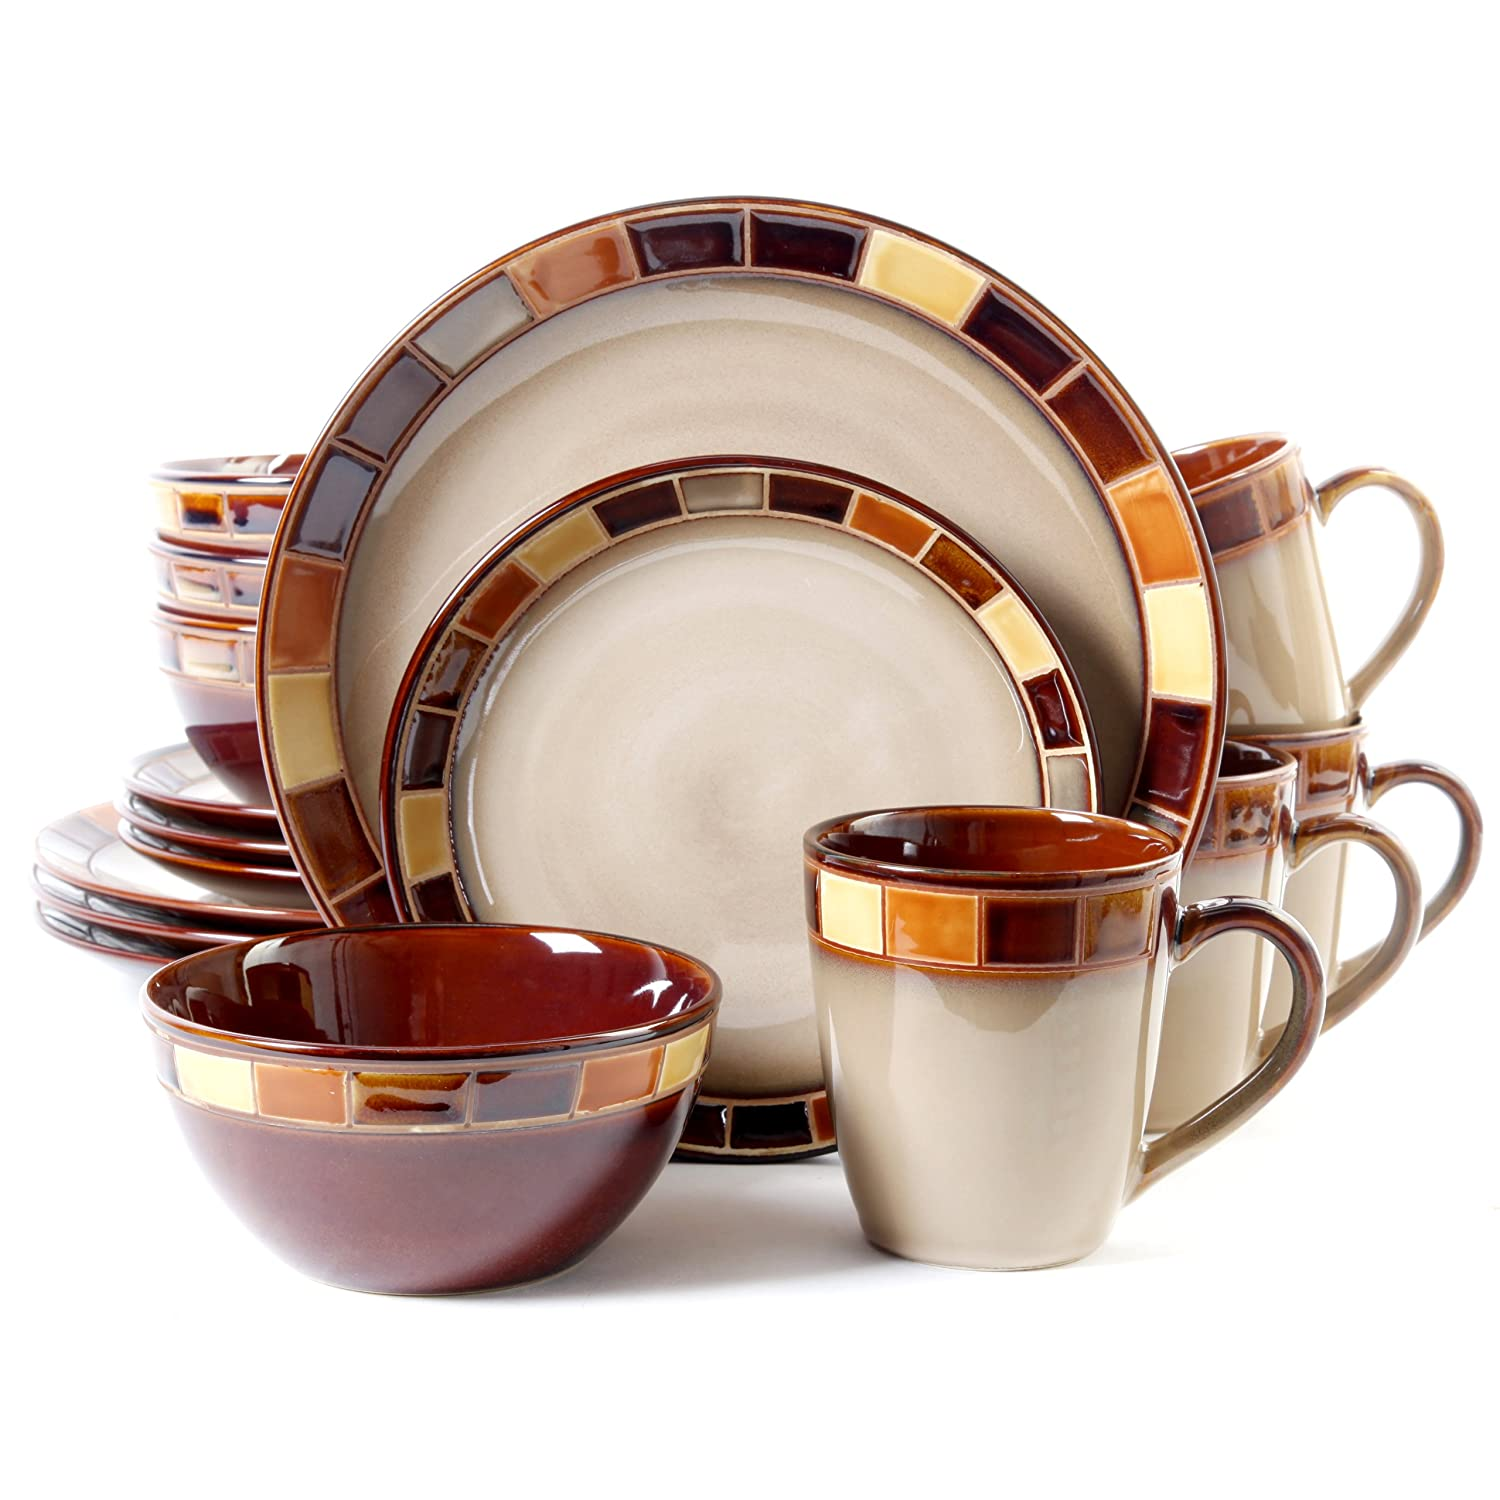 dinnerware set | 13 Discount Kitchenware You Must Grab on Cyber Monday